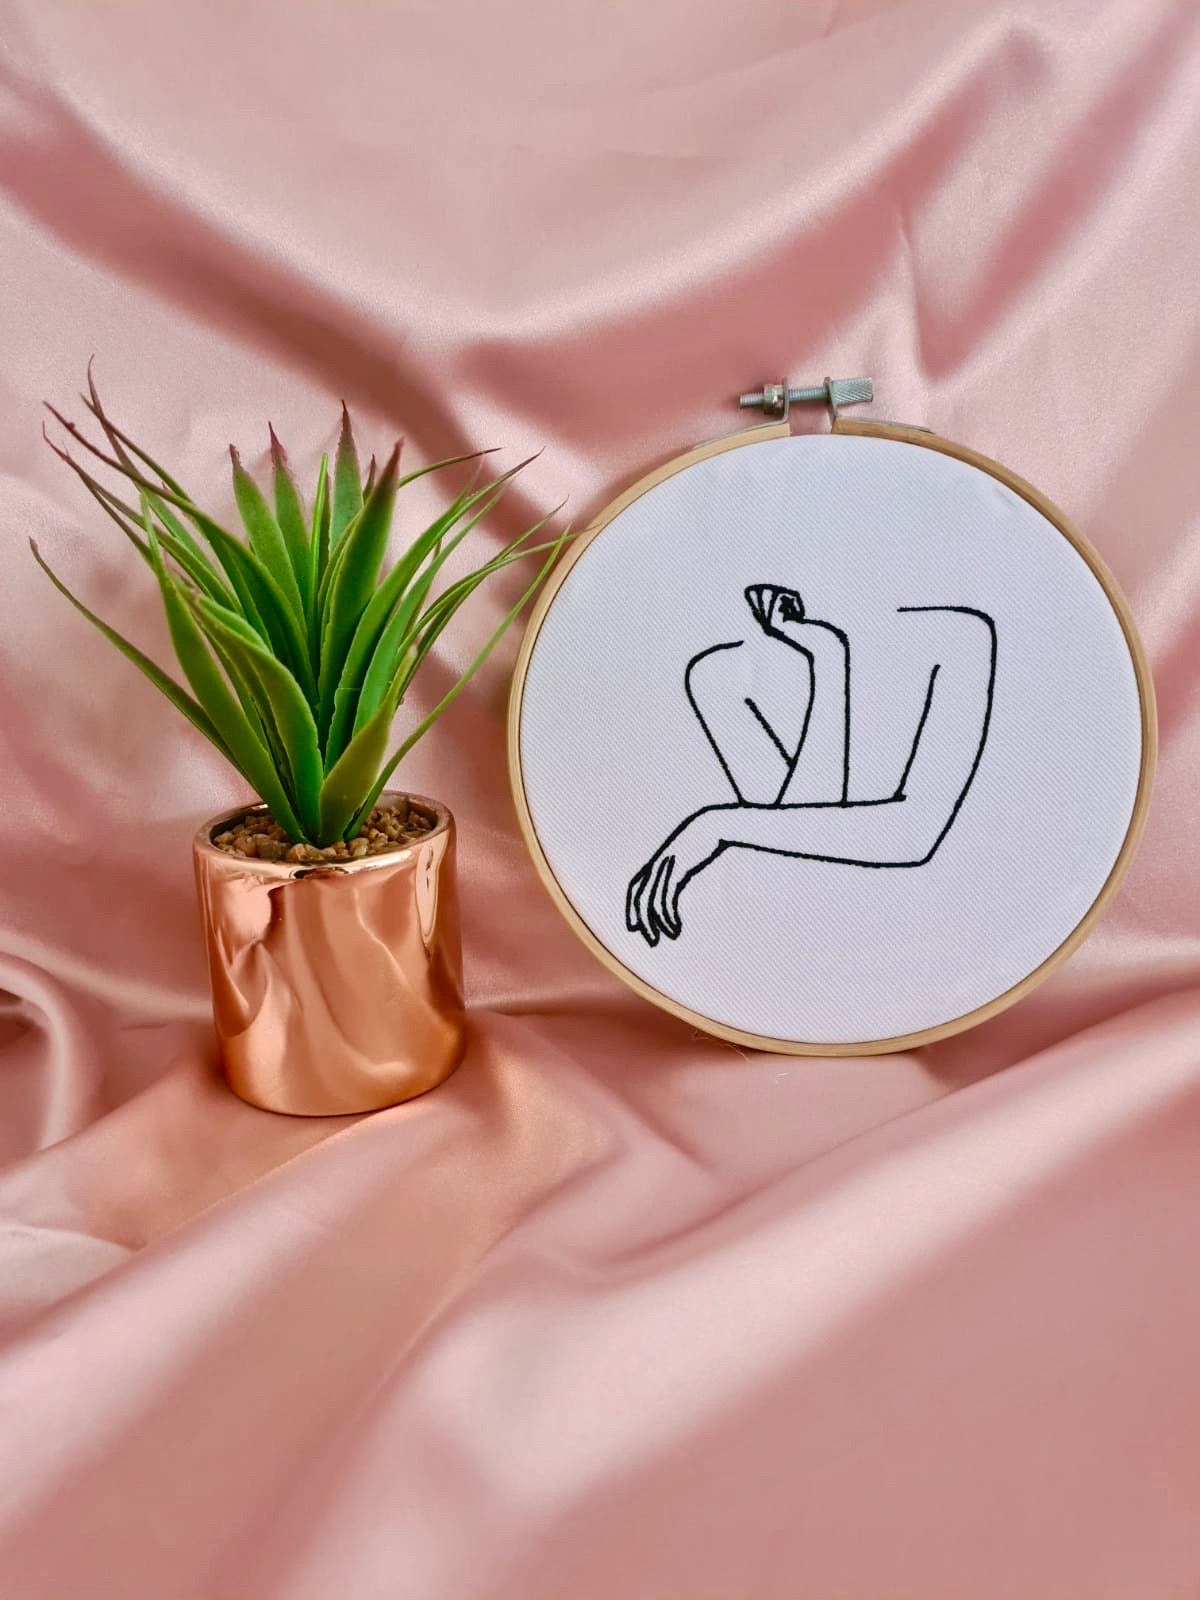 Cynthia Embroidery Hoop